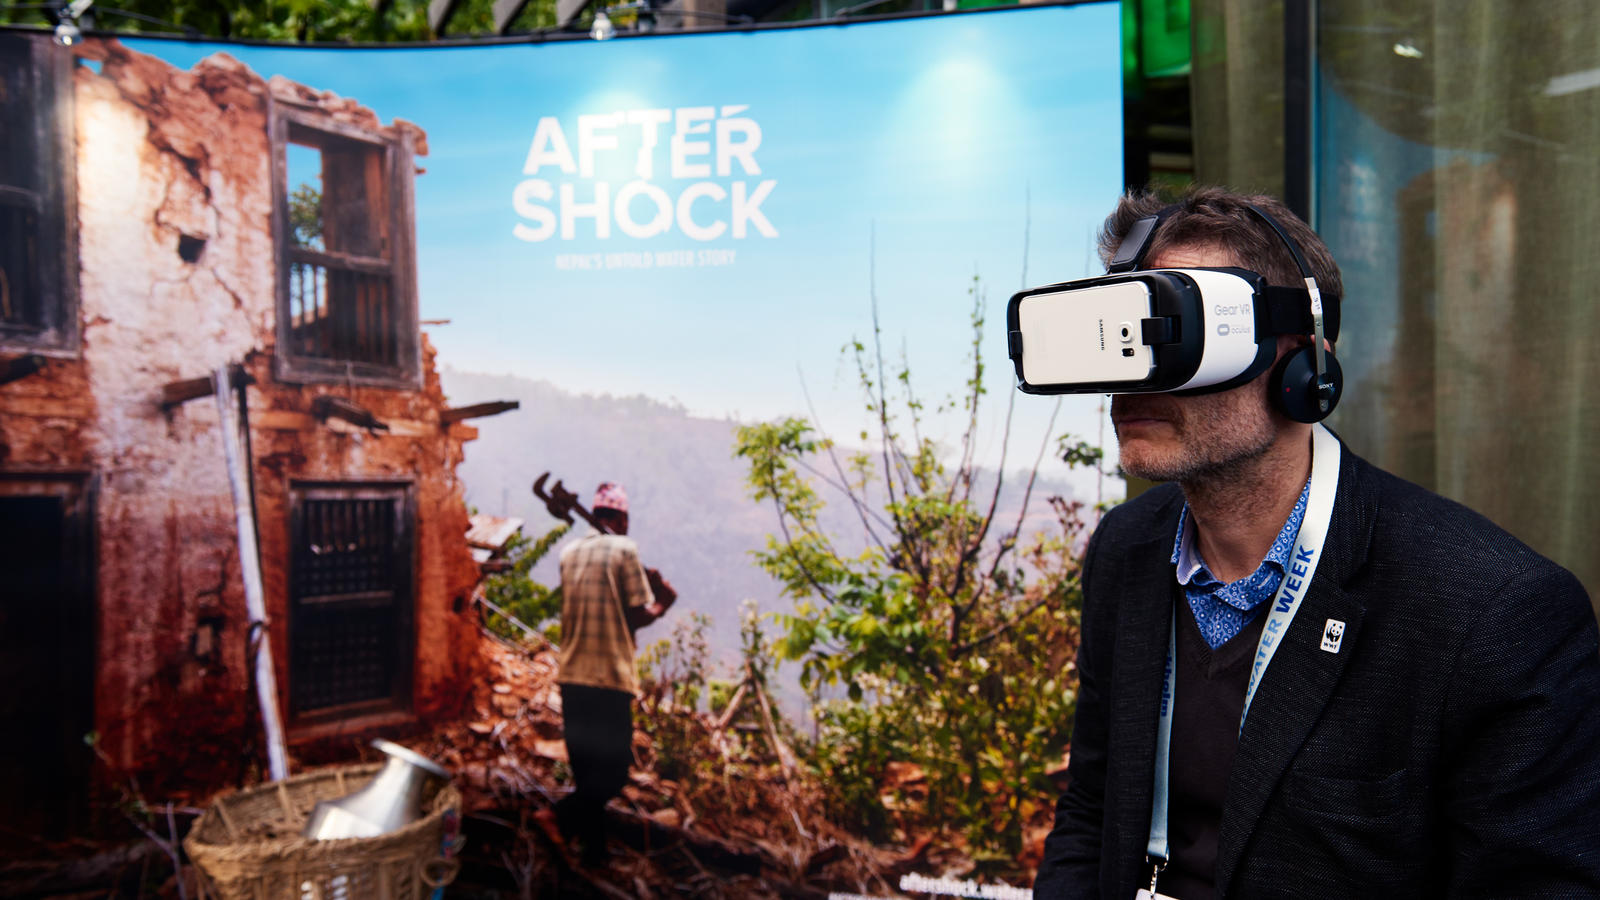 Our virtual reality film, Aftershock, launches in Stockholm during World Water Week.